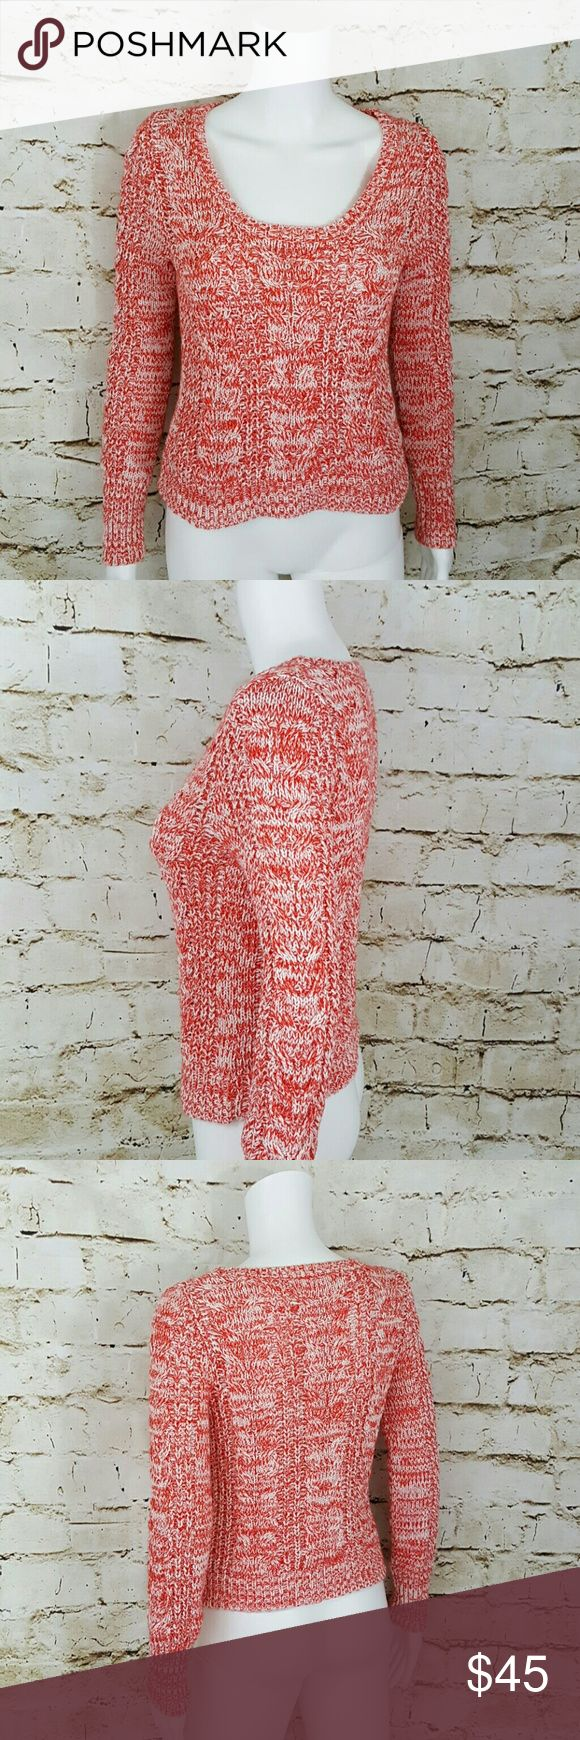 """Free People chunky cable knit sweater Scoop neck comfy cozy Free People sweater in a marled weave of red and cream, very pretty super cute with shorts or a denim skirt 18"""" across from armpit to armpit and 22"""" long from shoulder to hem Free People Sweaters"""